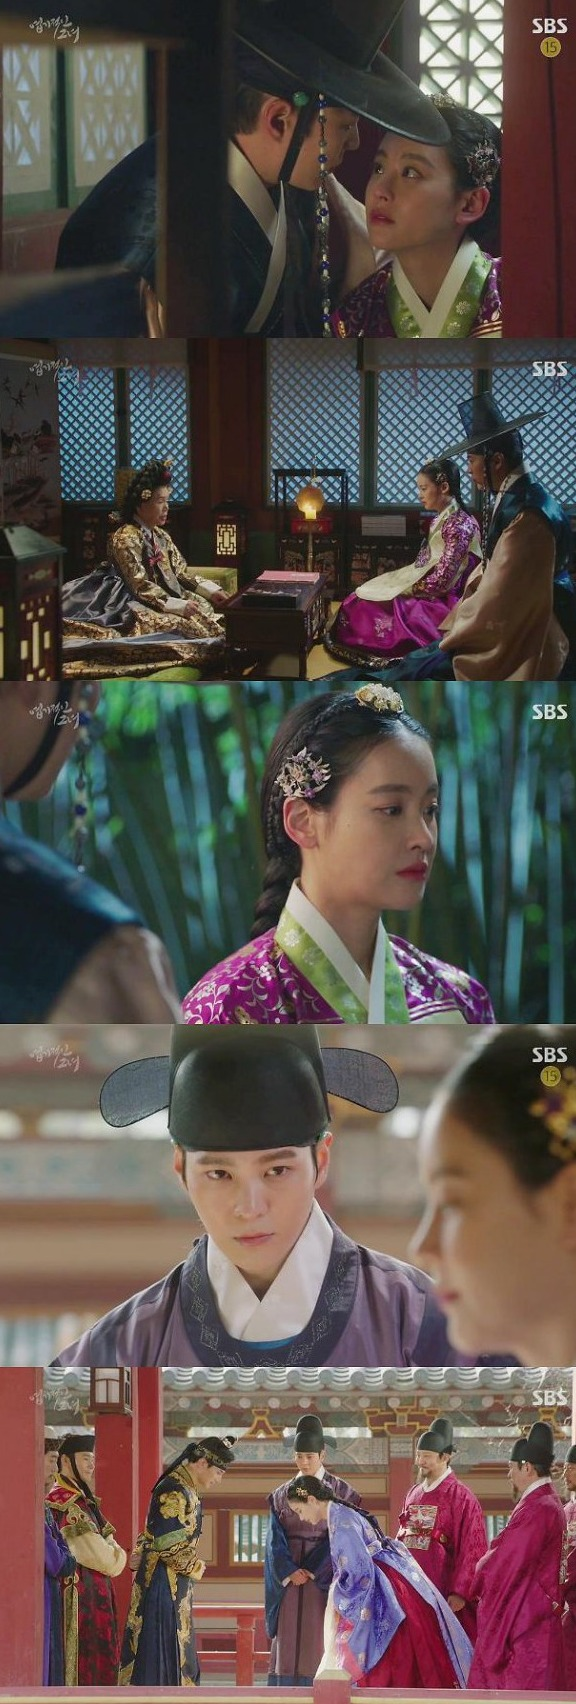 [Spoiler] Added episodes 15 and 16 captures for the Korean drama 'My Sassy Girl – Drama'